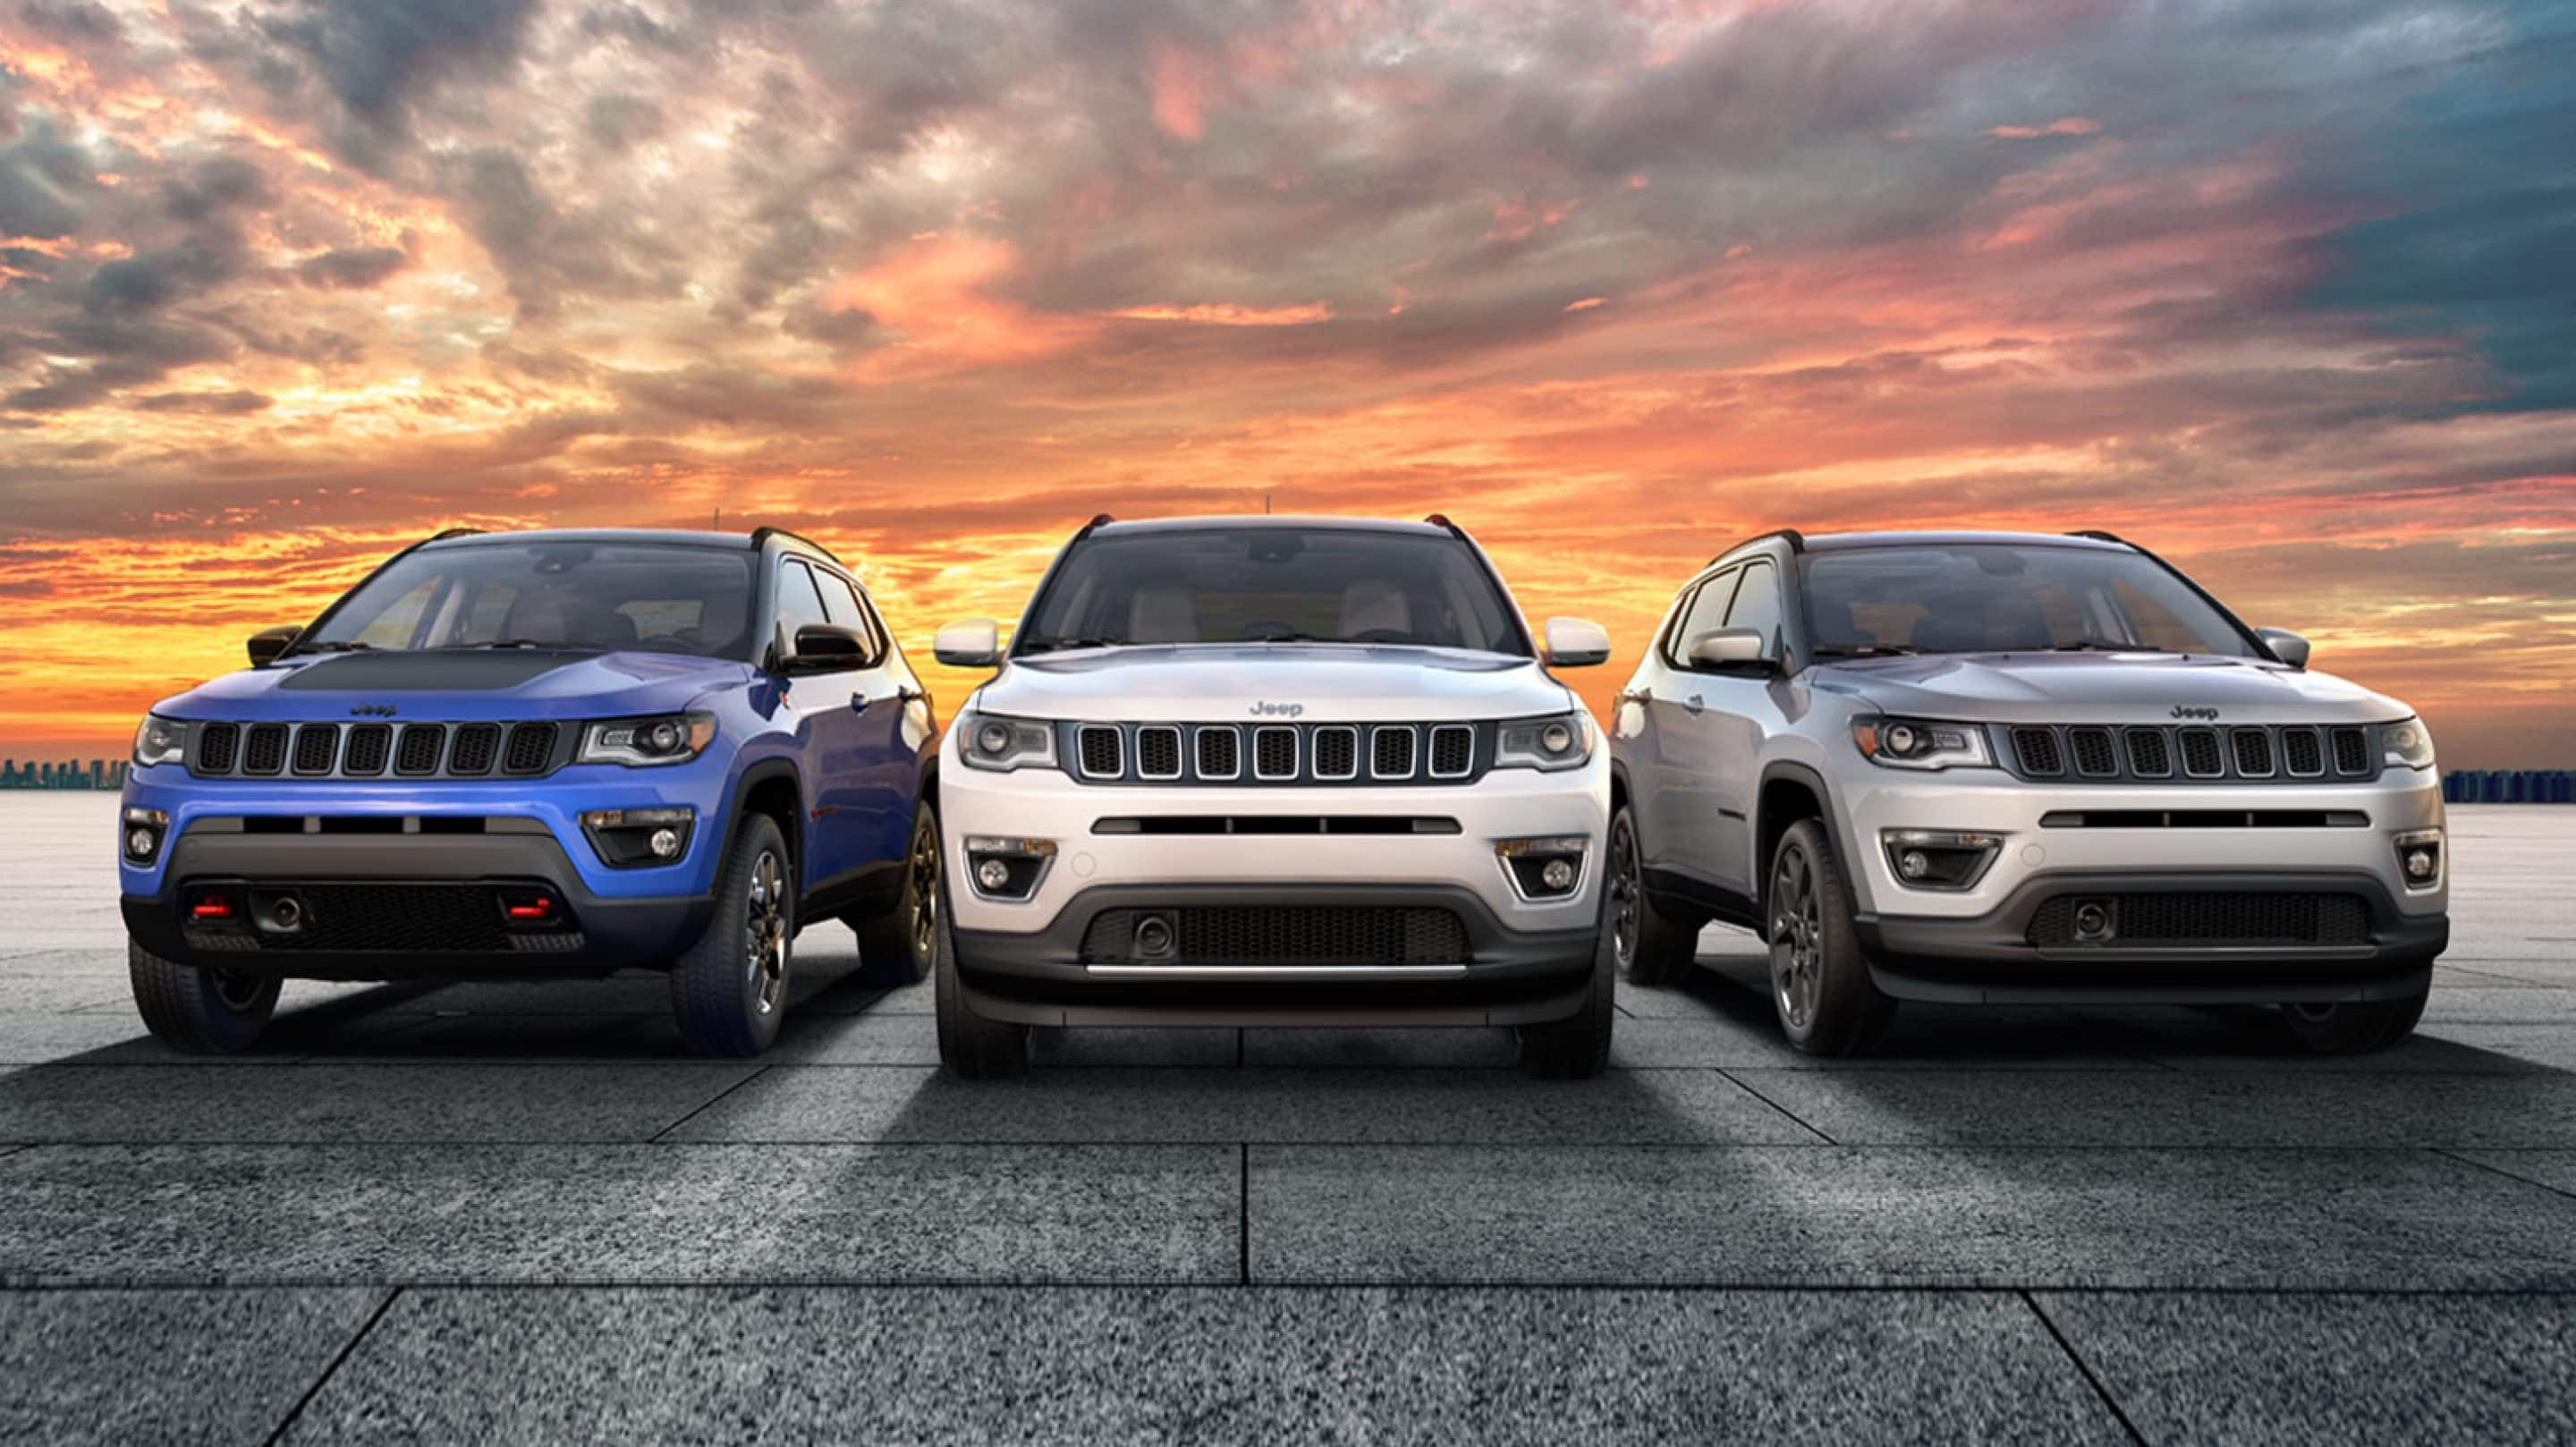 Trim Levels of the 2020 Jeep Compass